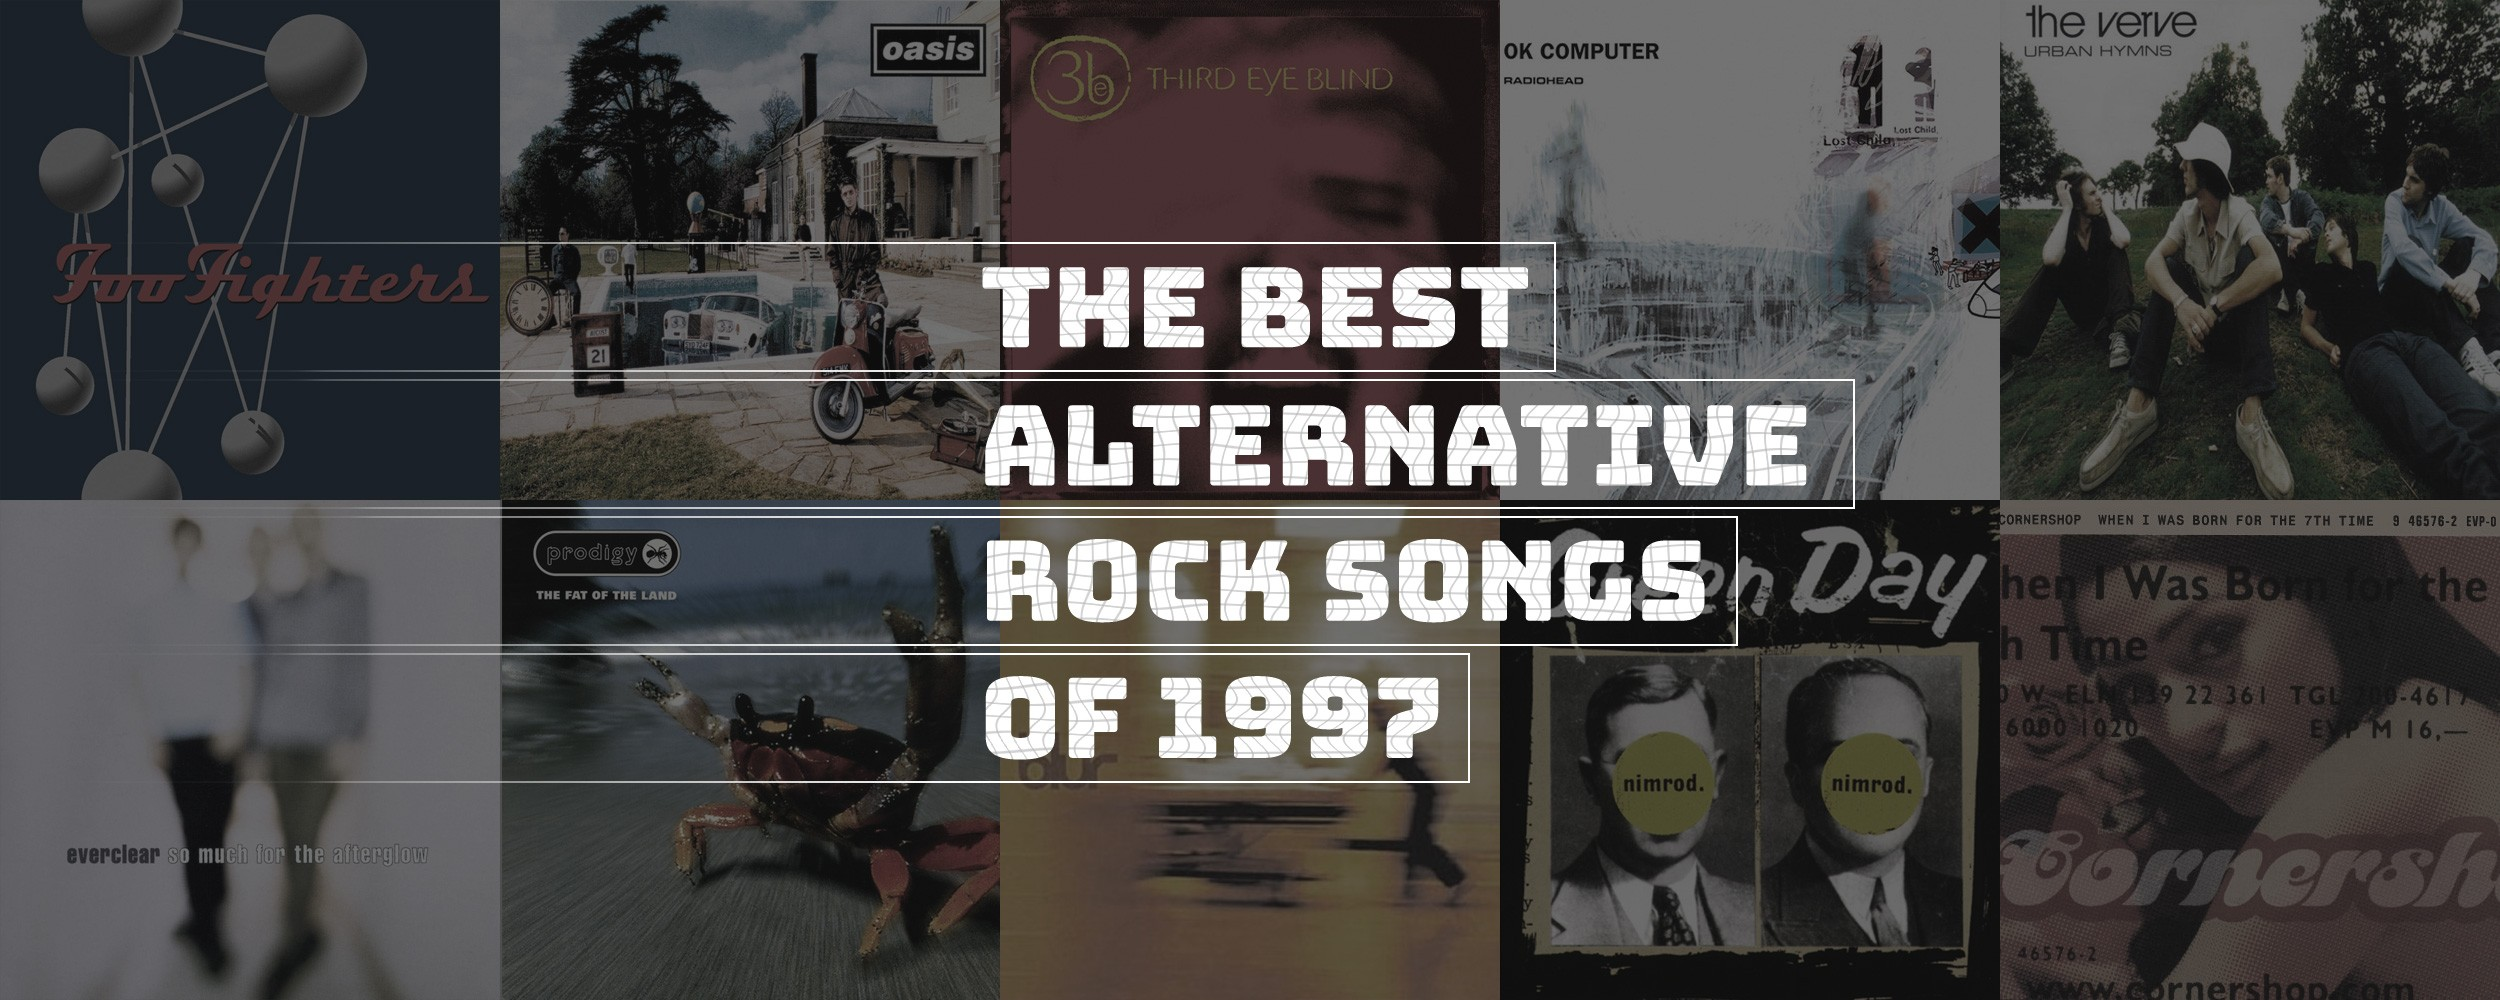 The 79 Best Alternative Rock Songs Of 1997